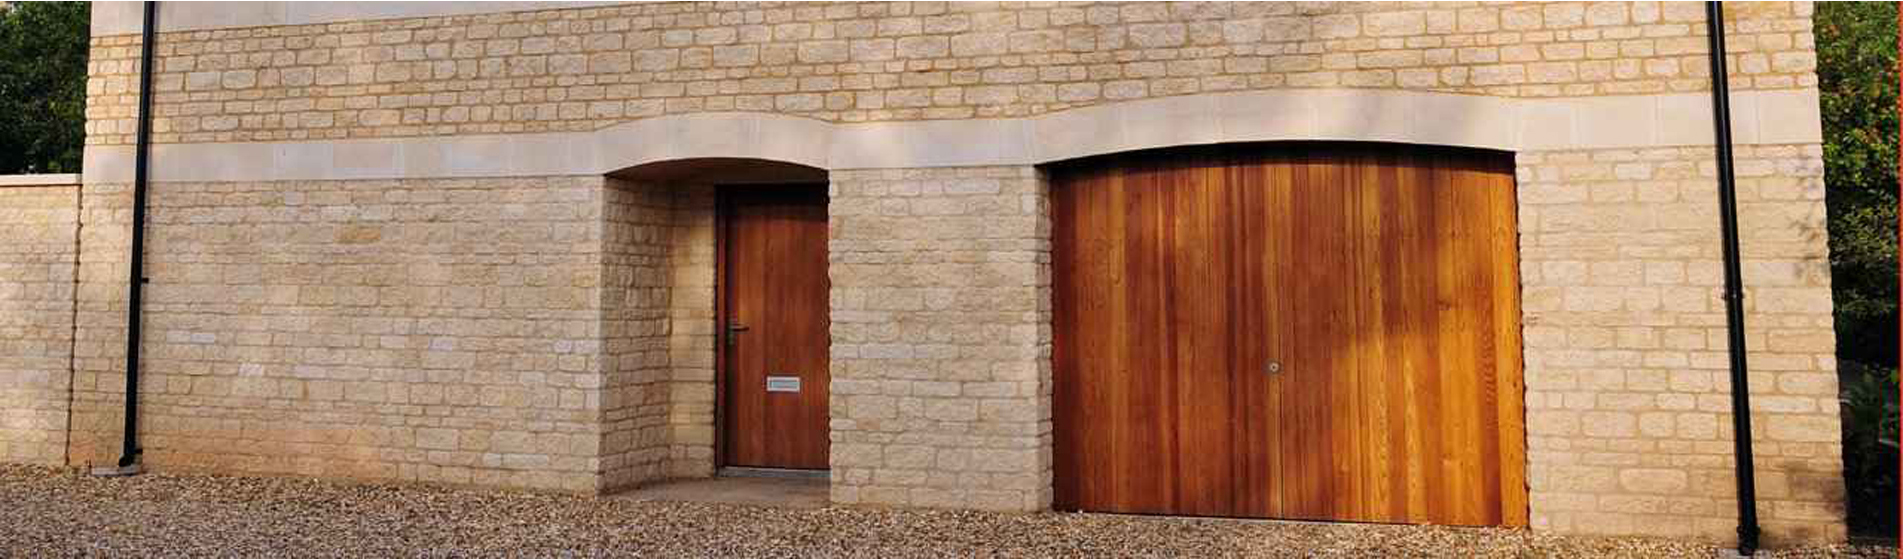 installer porte de garage avec portillon 30 Gard